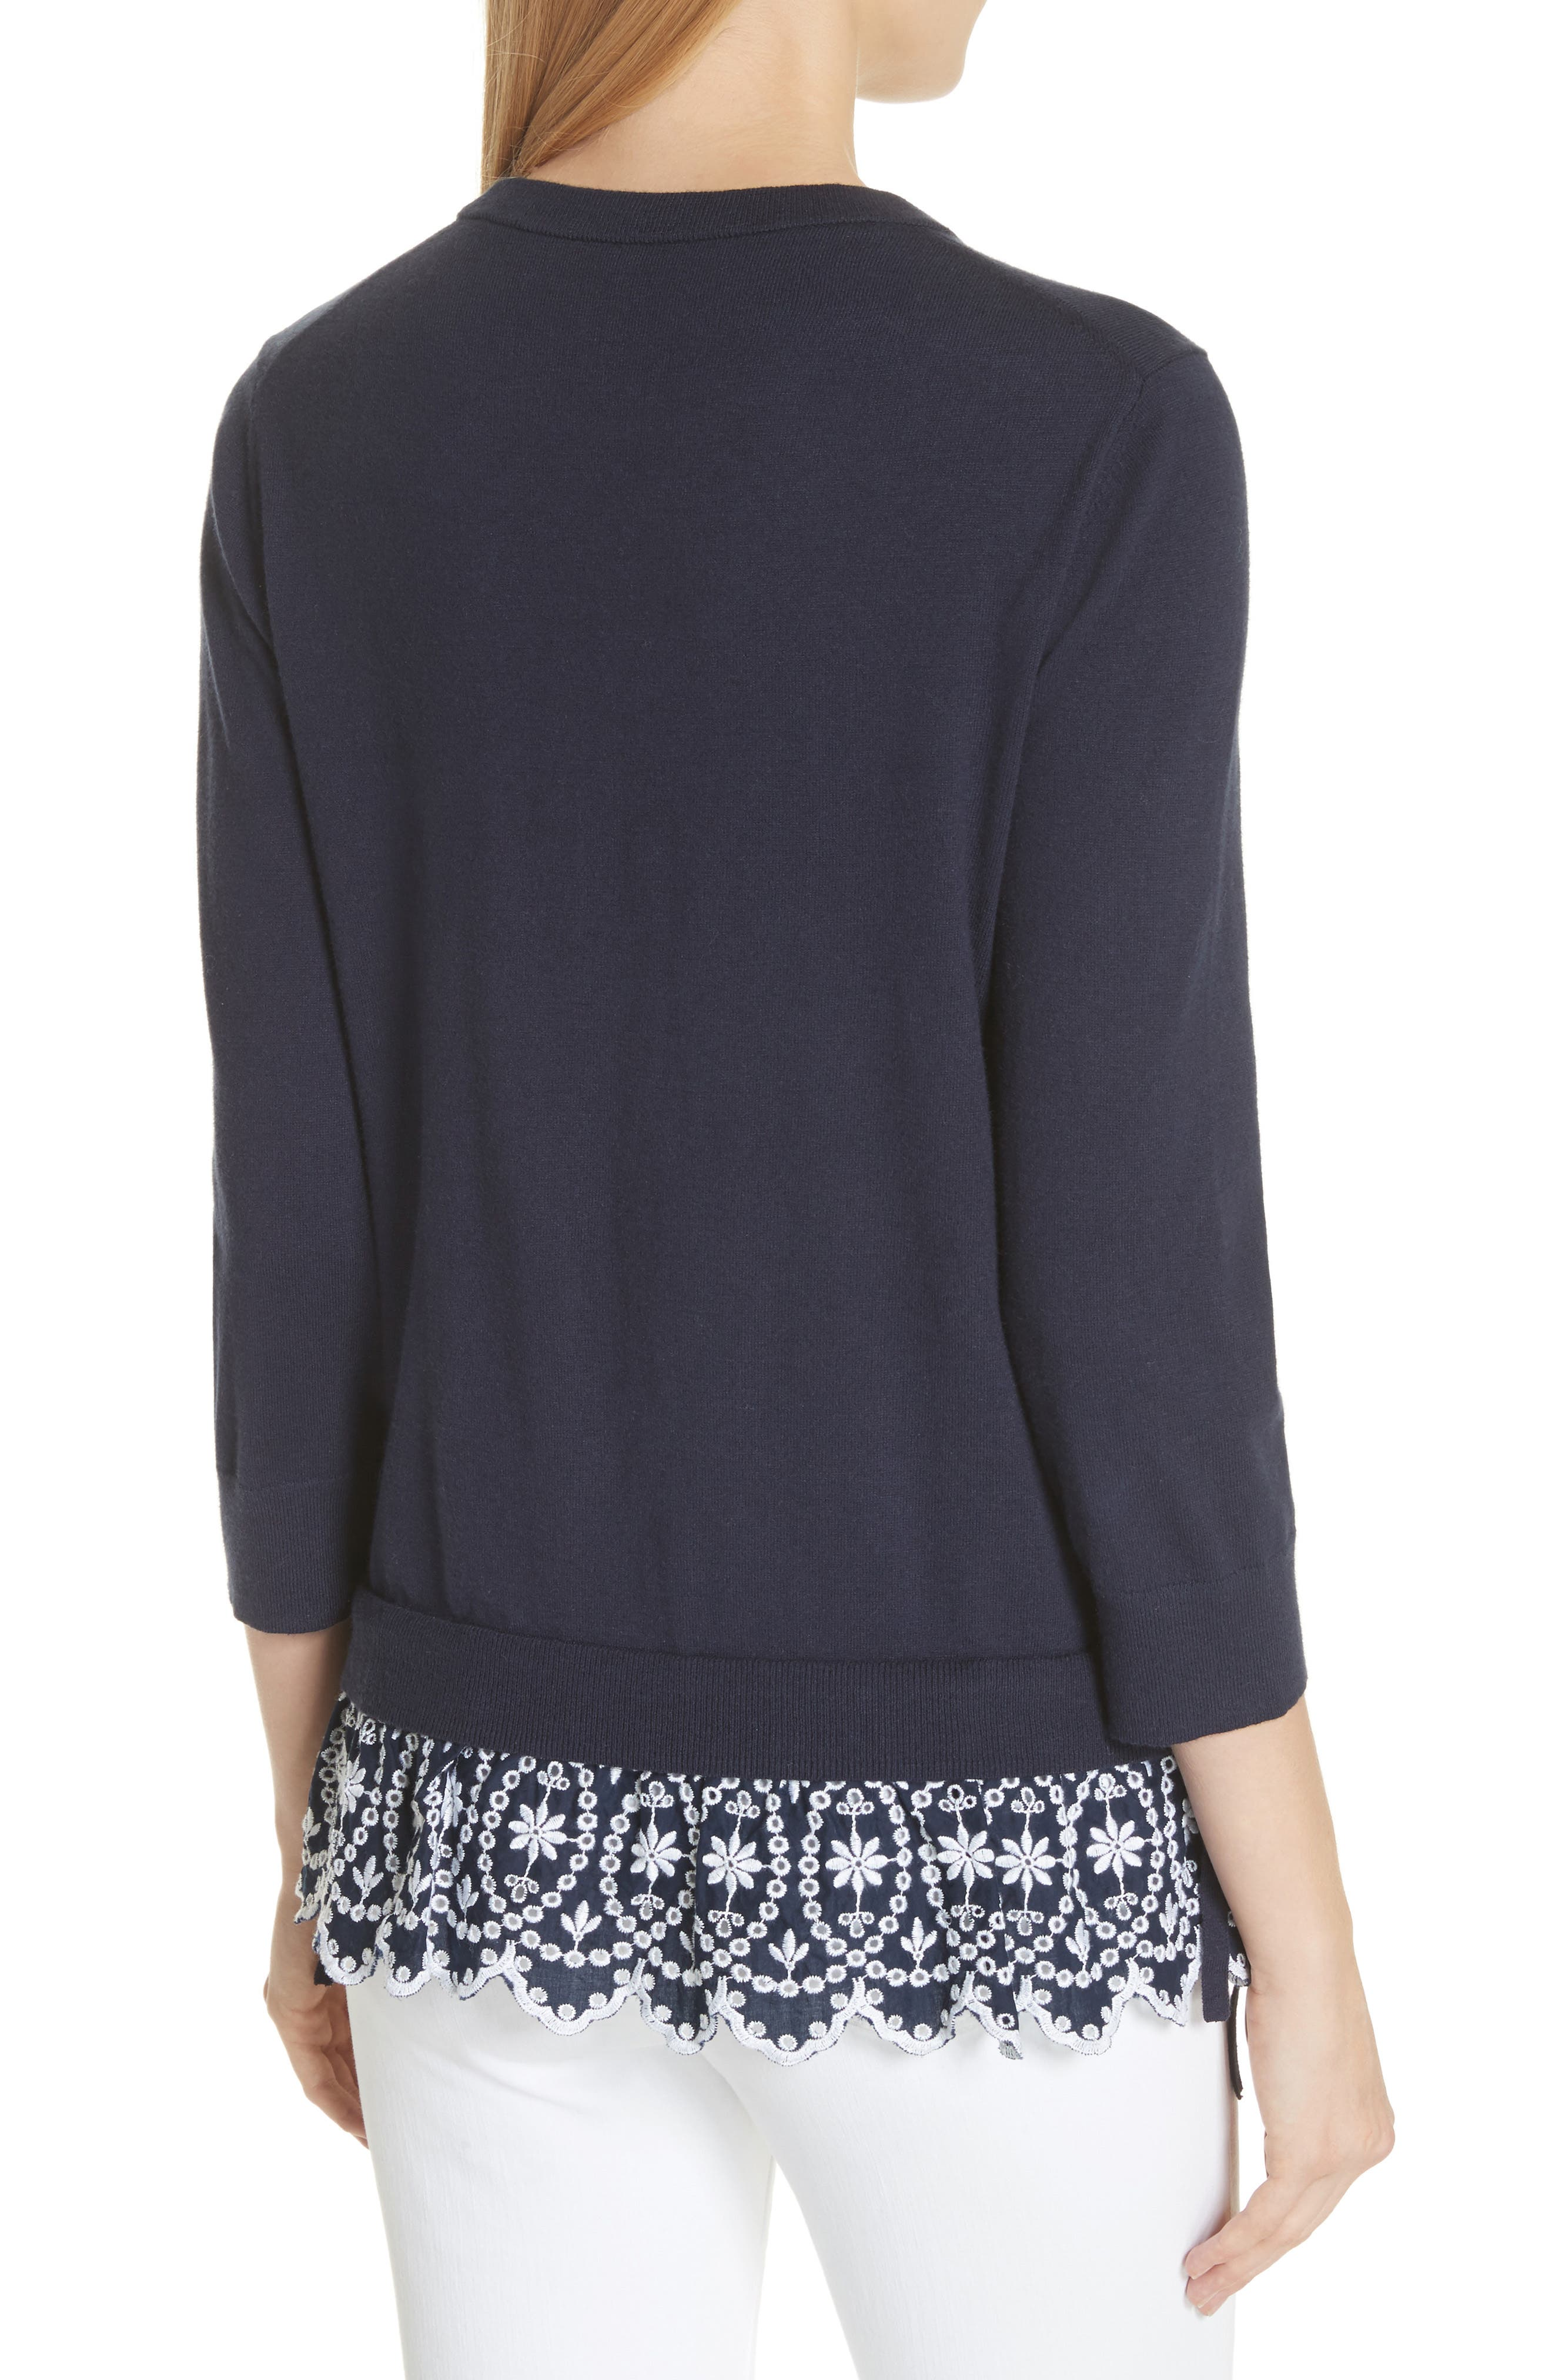 KATE SPADE NEW YORK,                             eyelet hem sweater,                             Alternate thumbnail 2, color,                             473